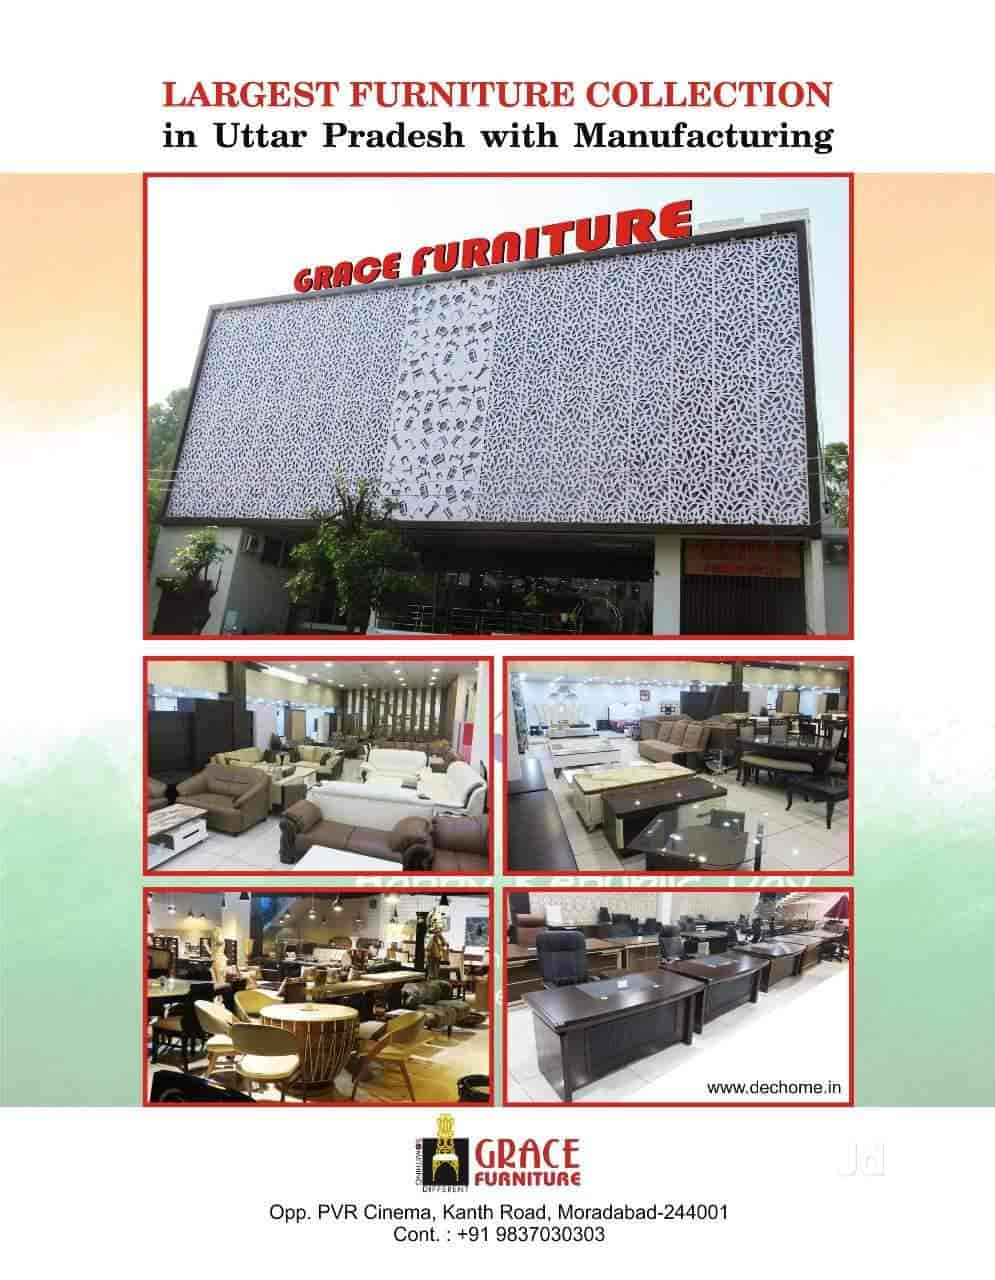 Grace Furniture, Moradabad Ho - Furniture Dealers in